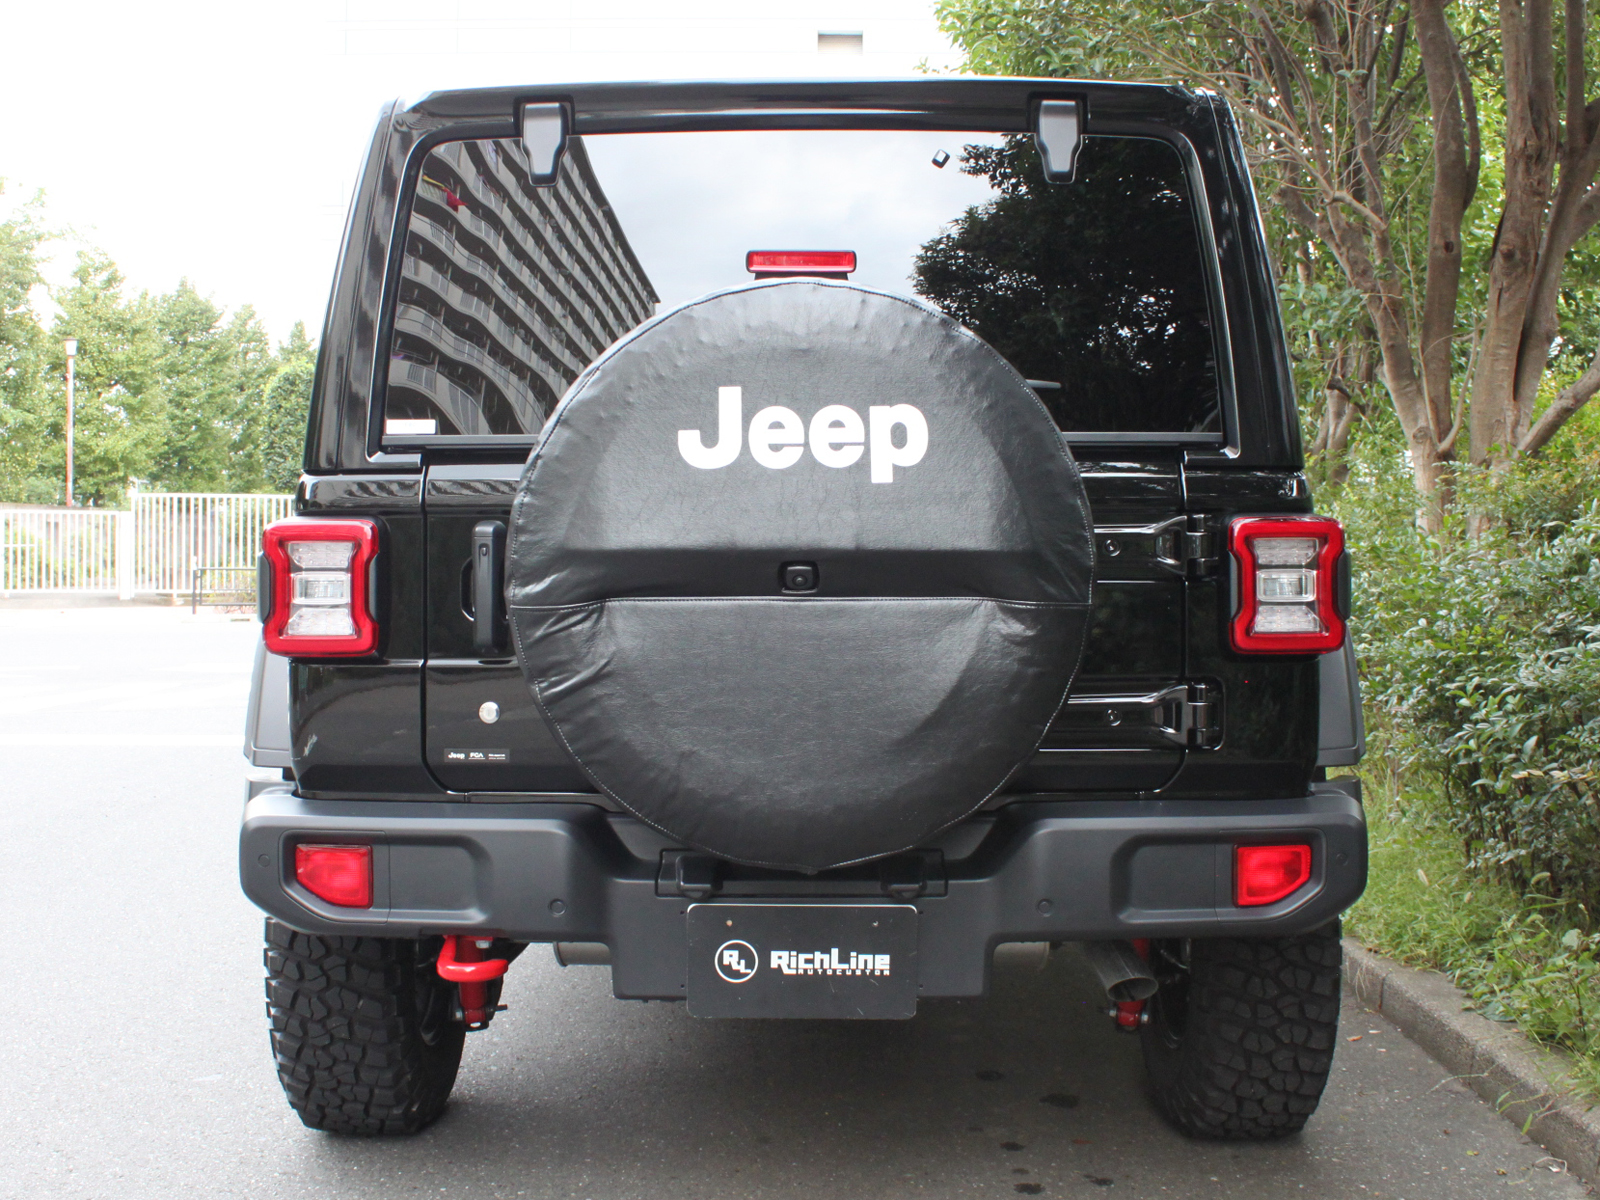 Wrangler Unlimited Rubicon Sky One-Touch Power Topリッチライン